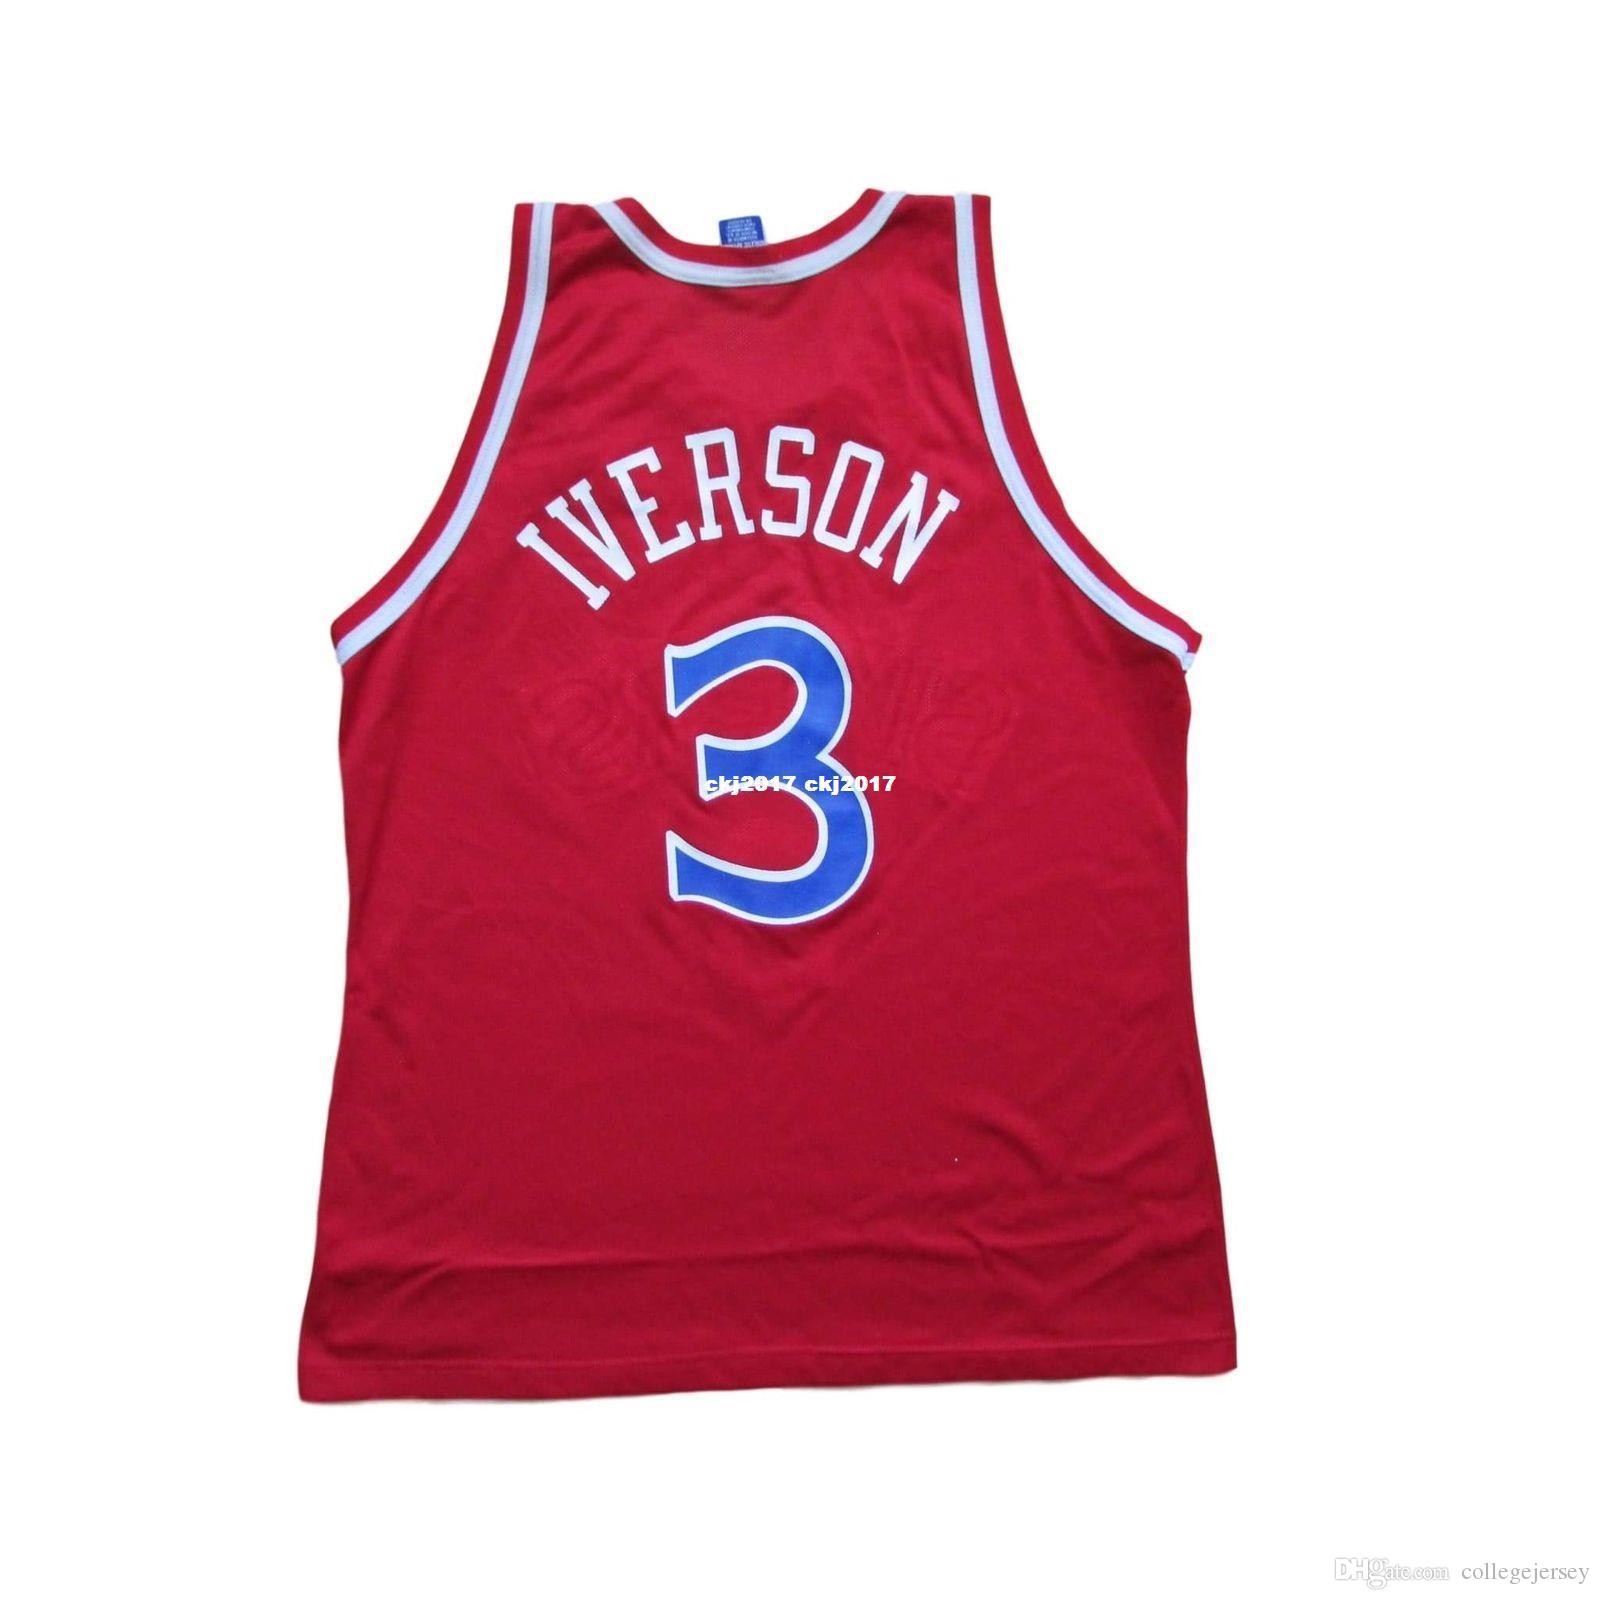 cheap for discount 7fe50 e272b Sewn Allen Iverson #3 Basketball Jersey 1998 Champion Red Mens Vest Top  Size XS-6XL Stitched basketball Jerseys Ncaa